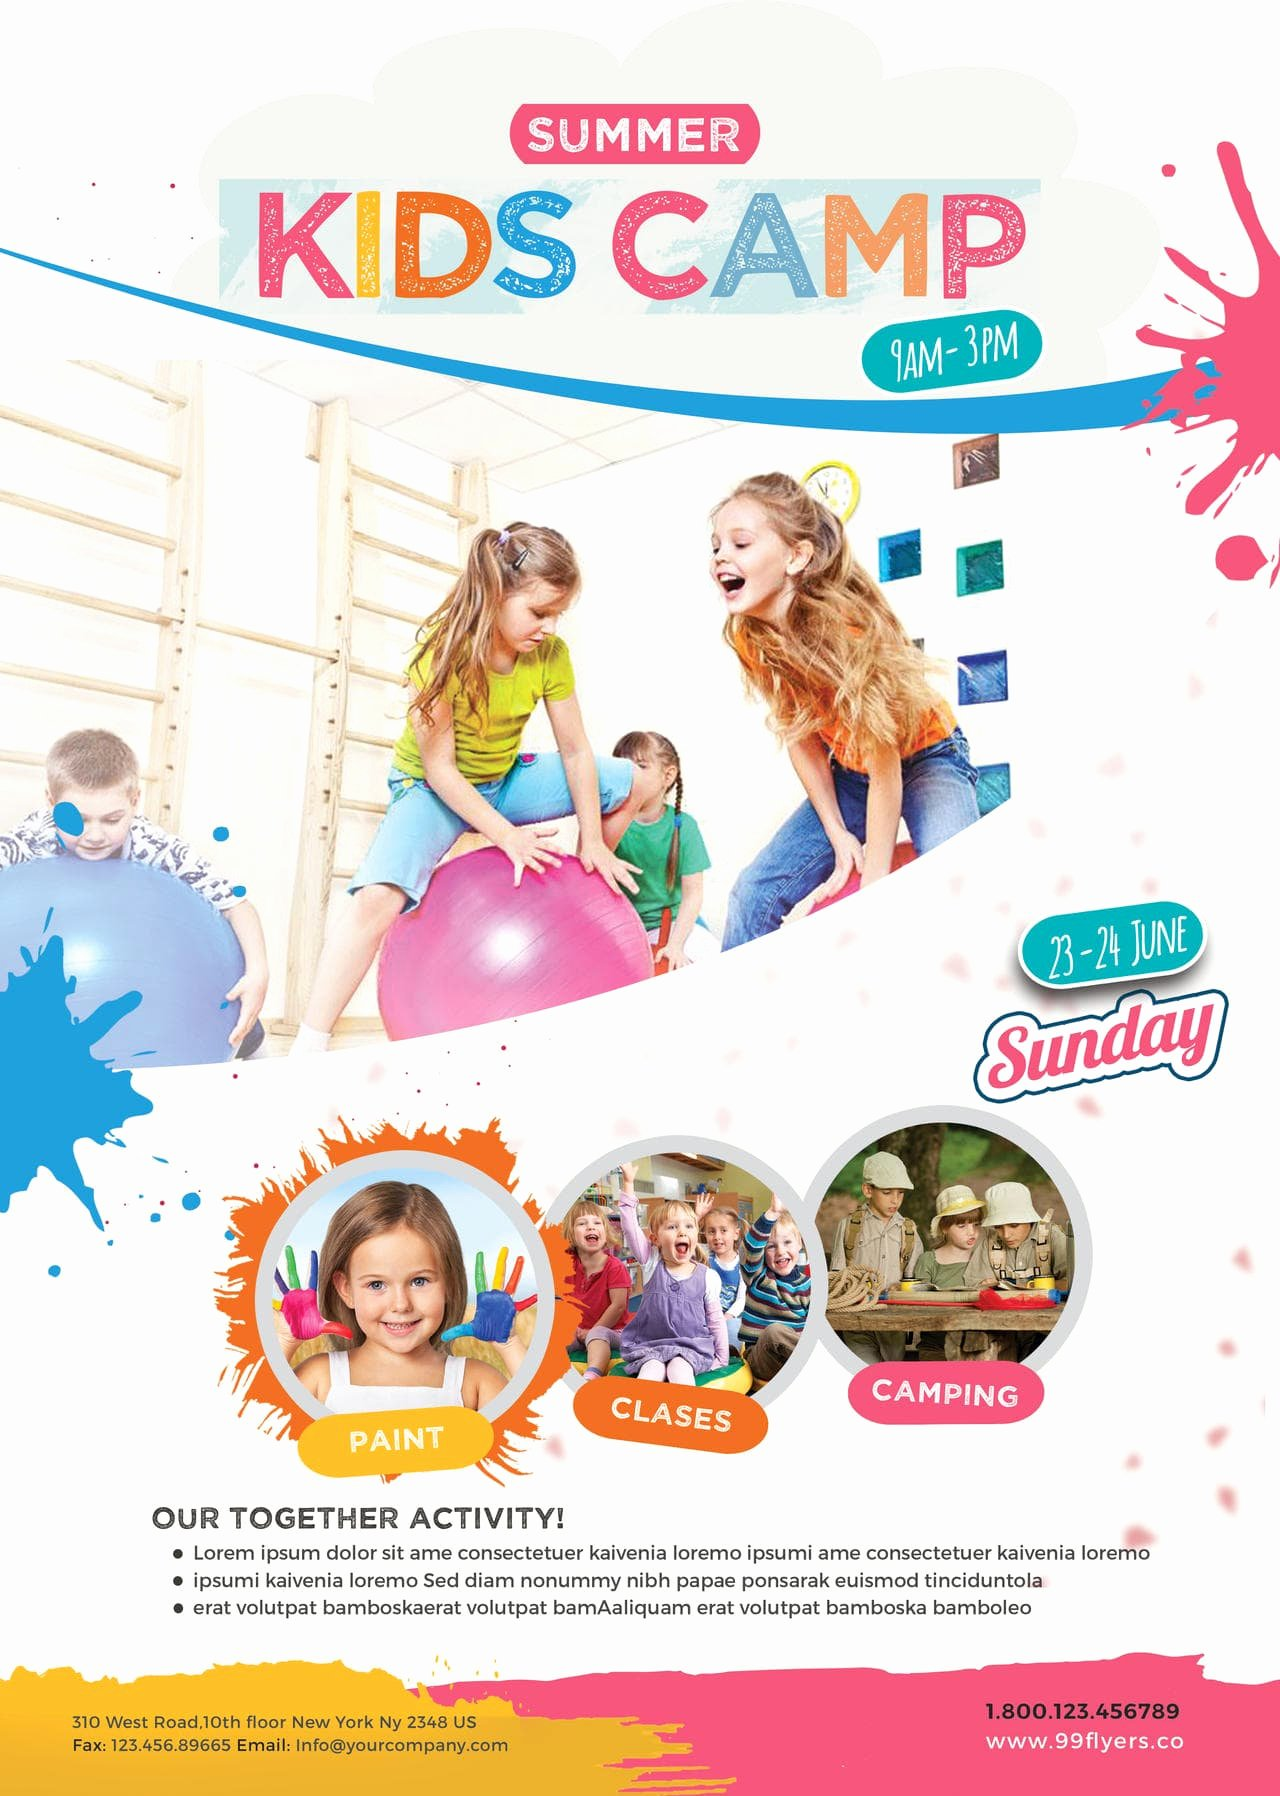 Summer Camp Flyer Templates Free Fresh Kids Summer Camp Free Psd Flyer Template Free Psd Flyer